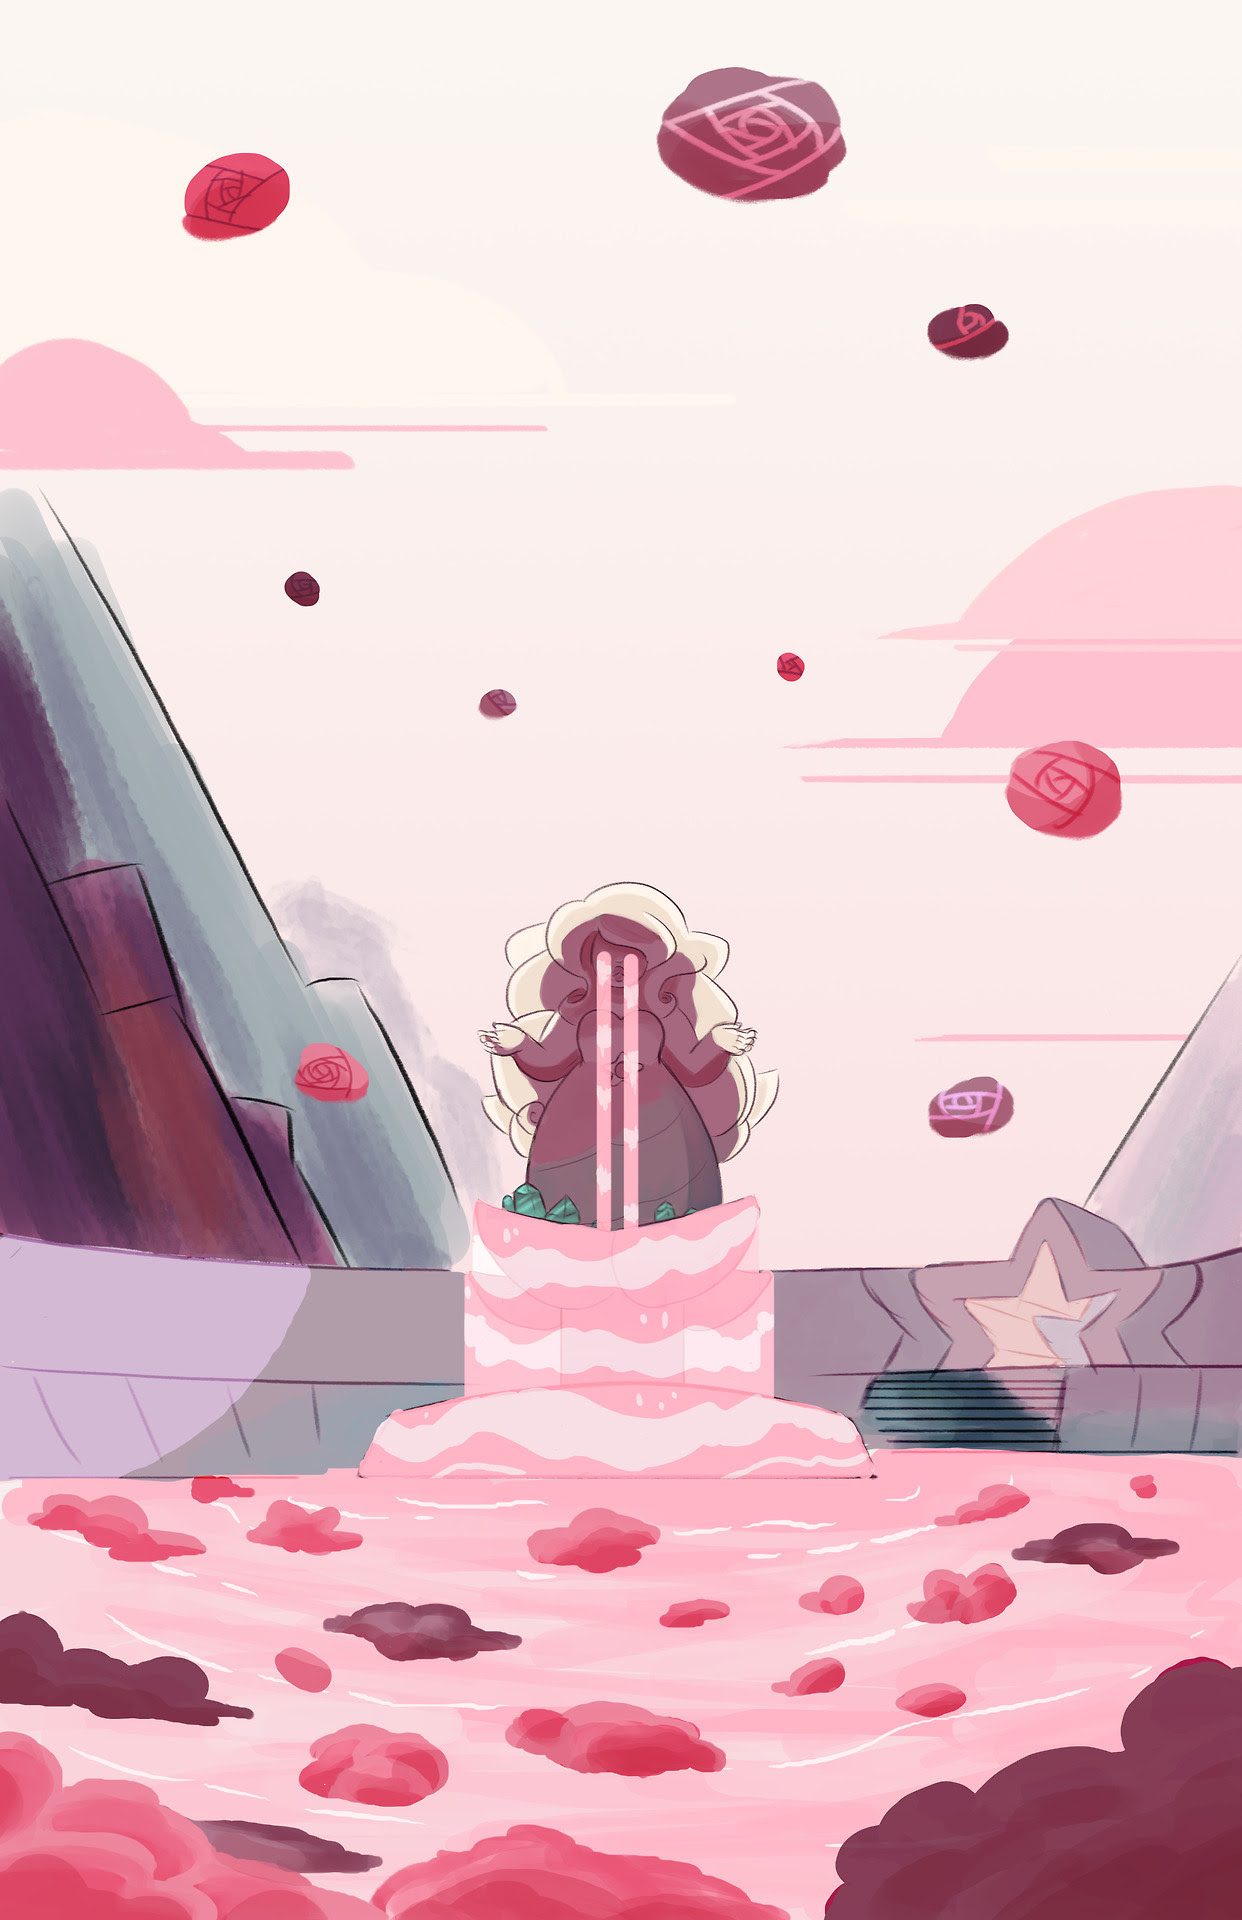 Here it is! My third print! I feel bad cause I havent watched SU in forever but I've always loved Rose's fountain